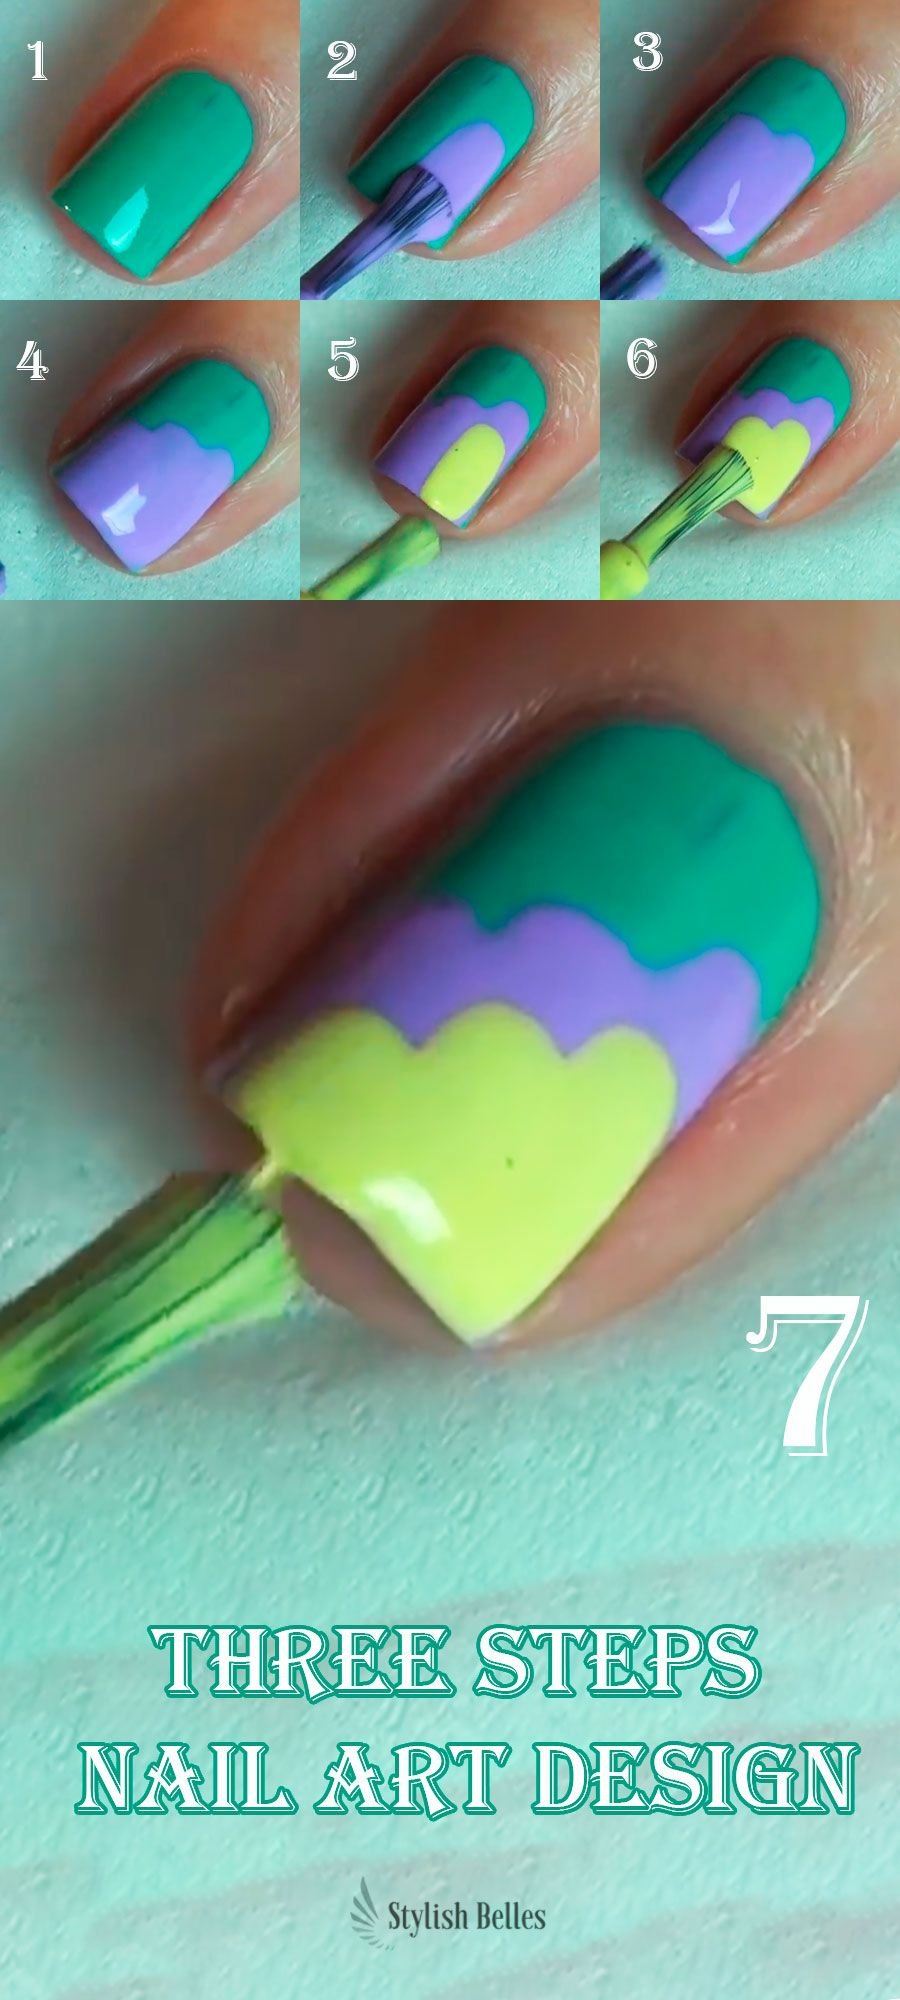 Three steps Nail Art Design nails nailartdesign